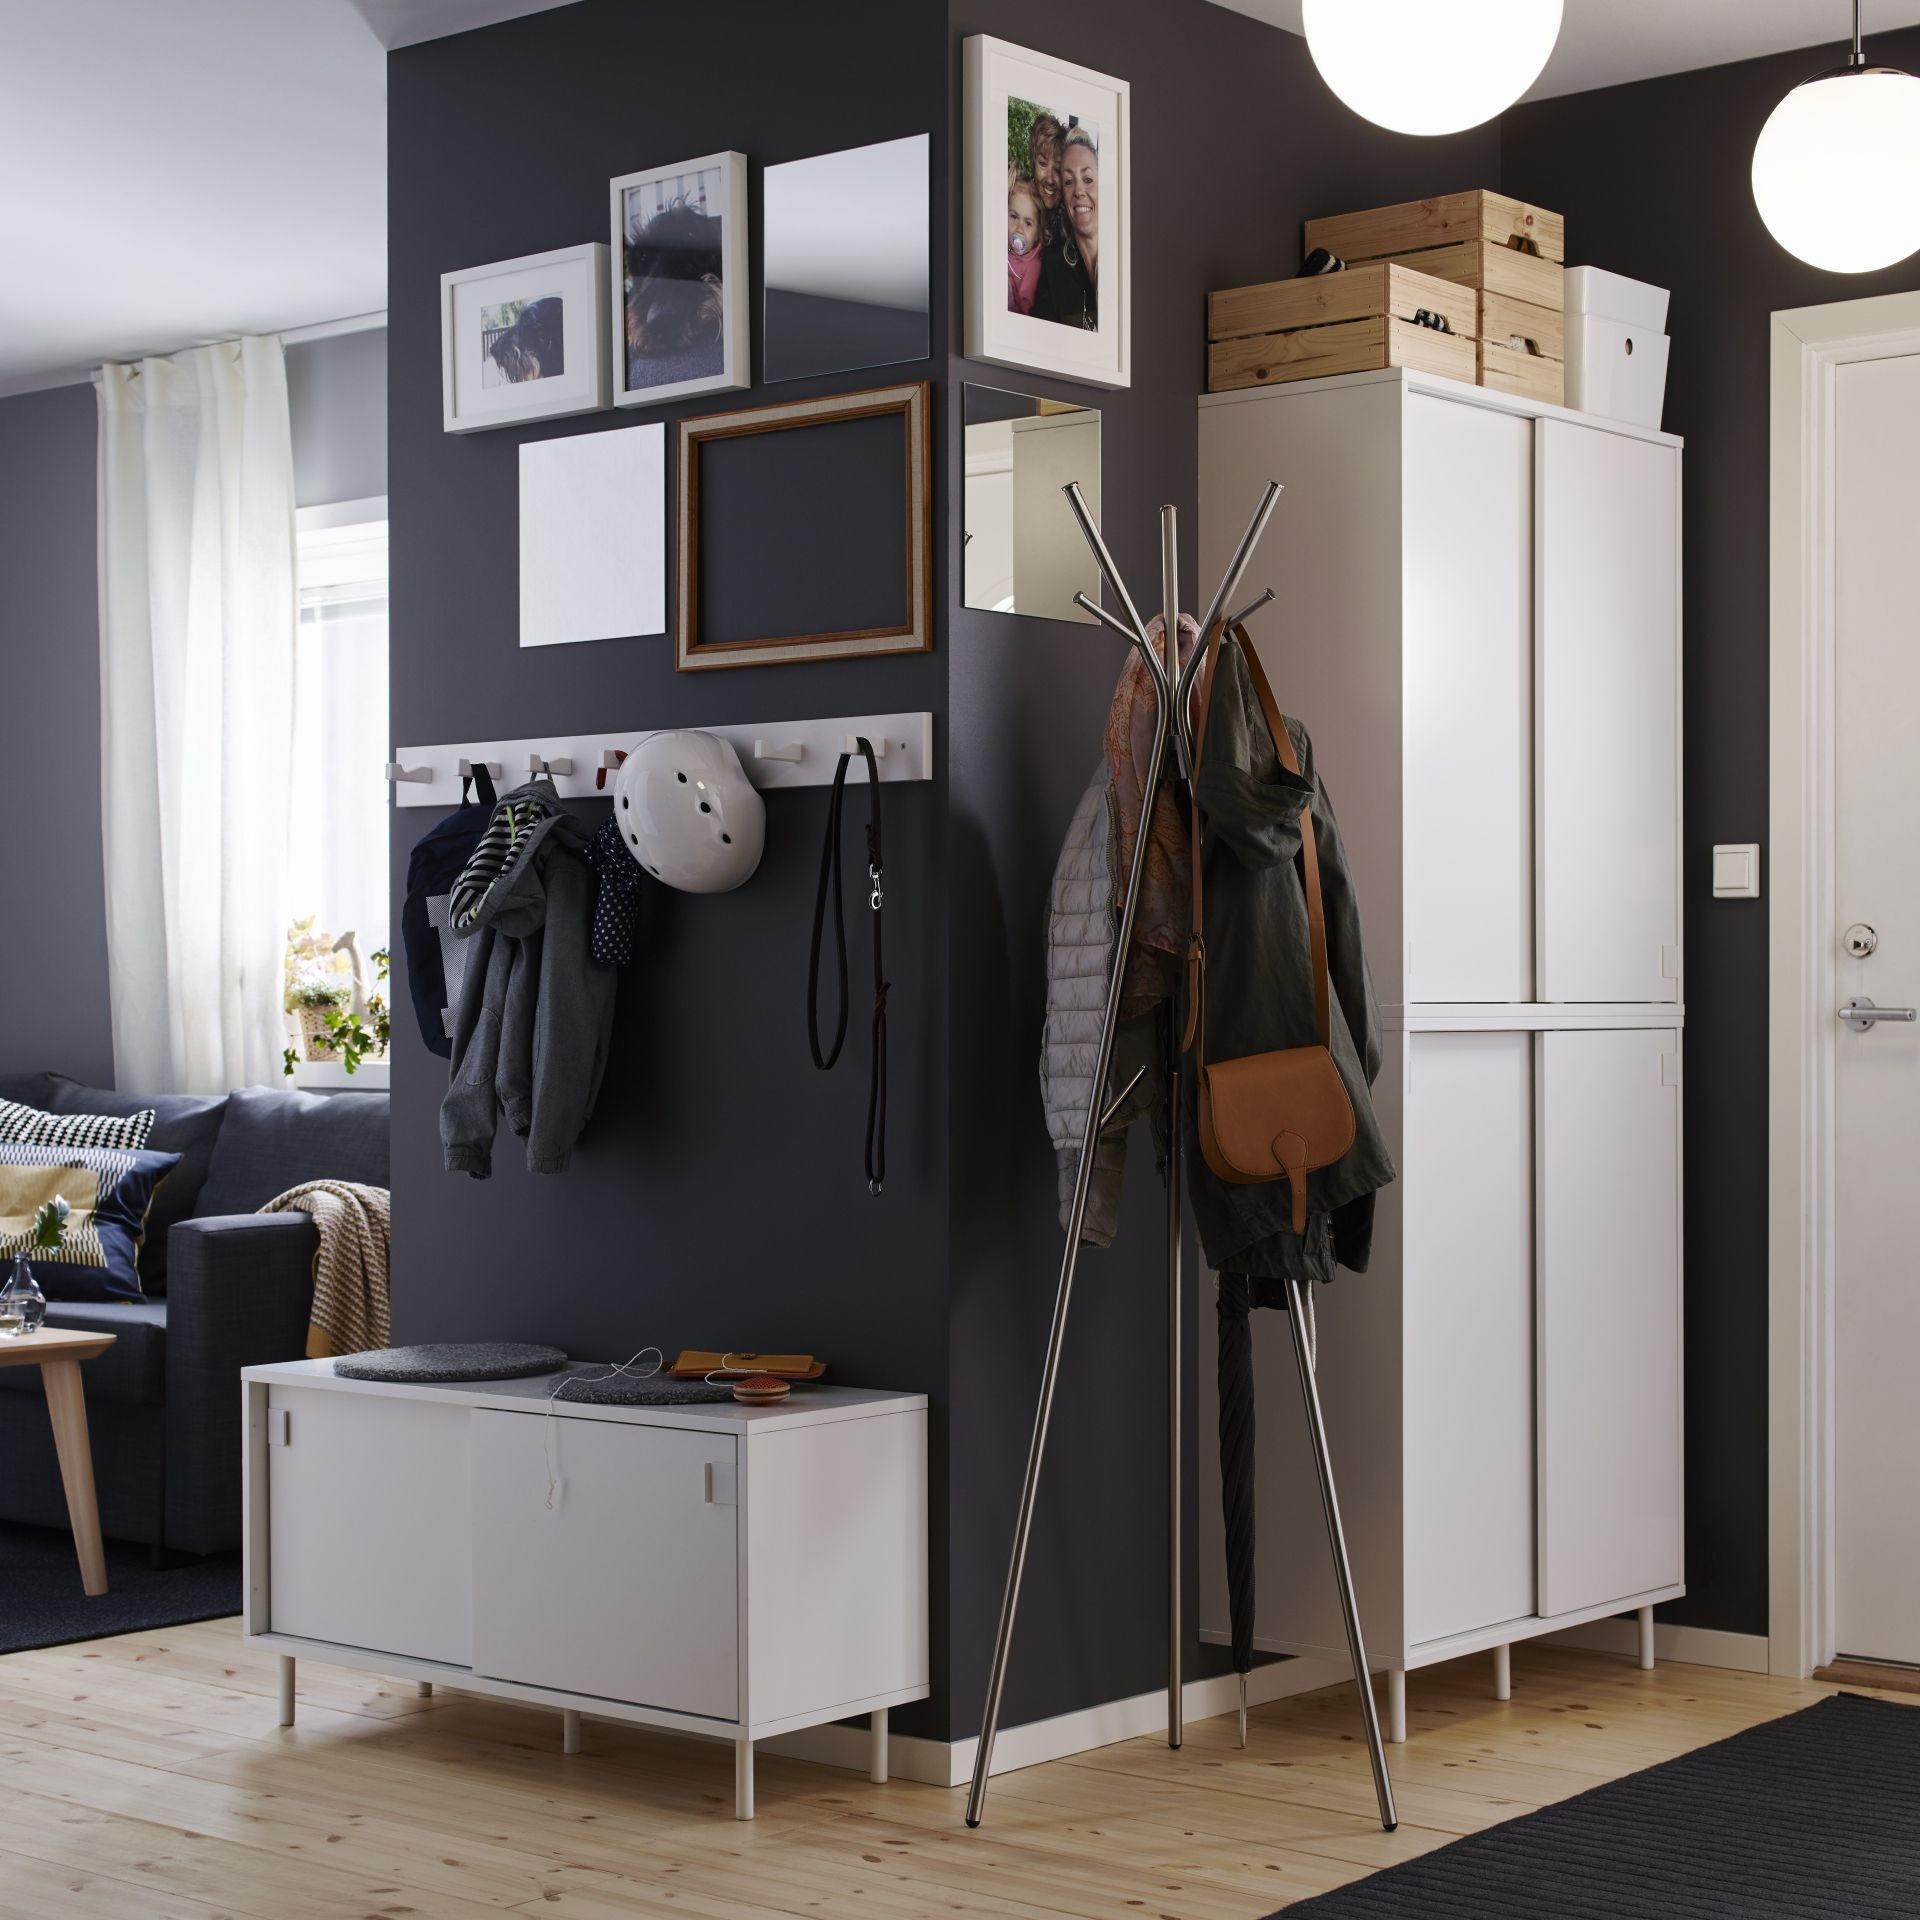 mackap r bank met opbergvakken interiors ikea hack and. Black Bedroom Furniture Sets. Home Design Ideas